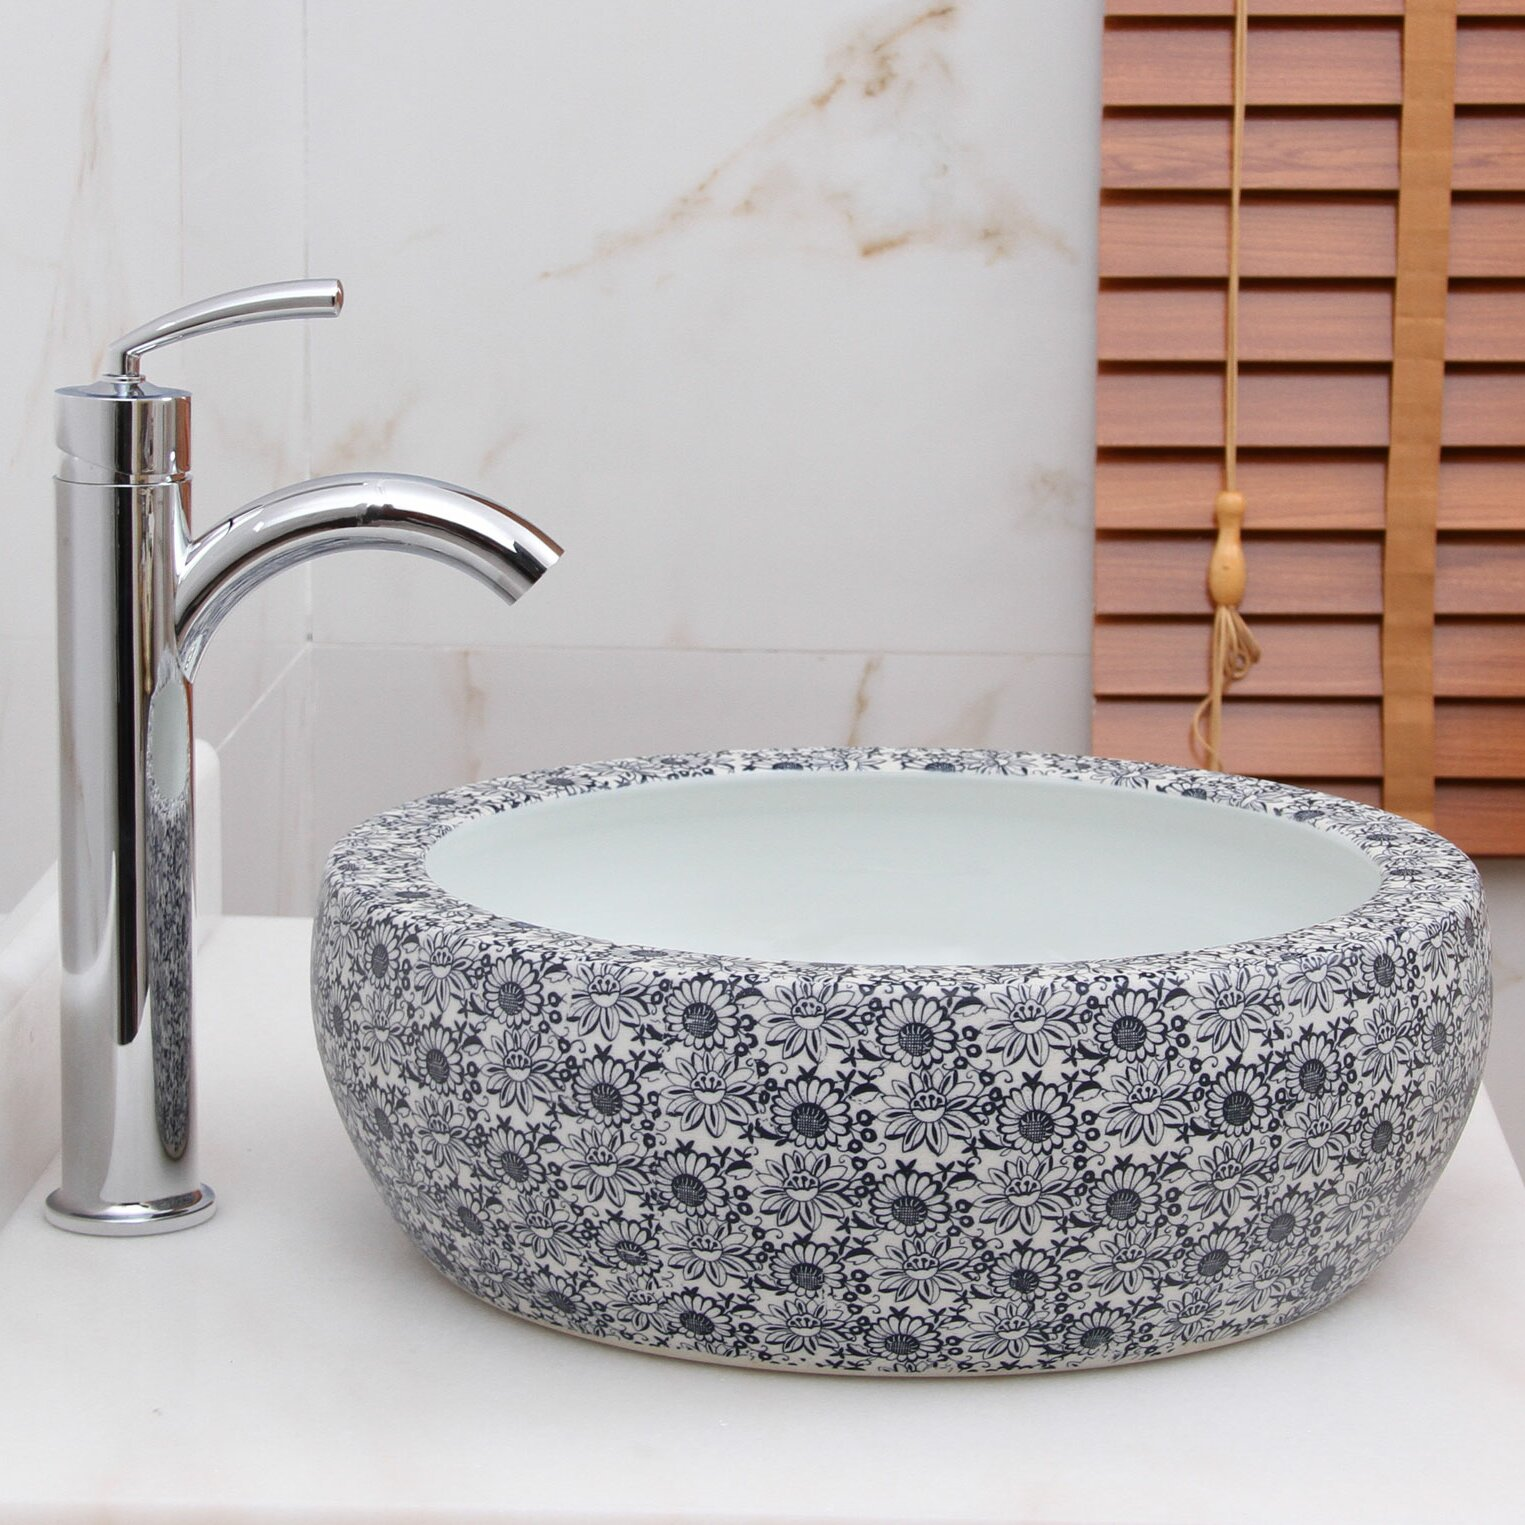 Floral Bathroom Sinks : Blue and White Floral Pattern Vessel Bathroom Sink by Elimaxs